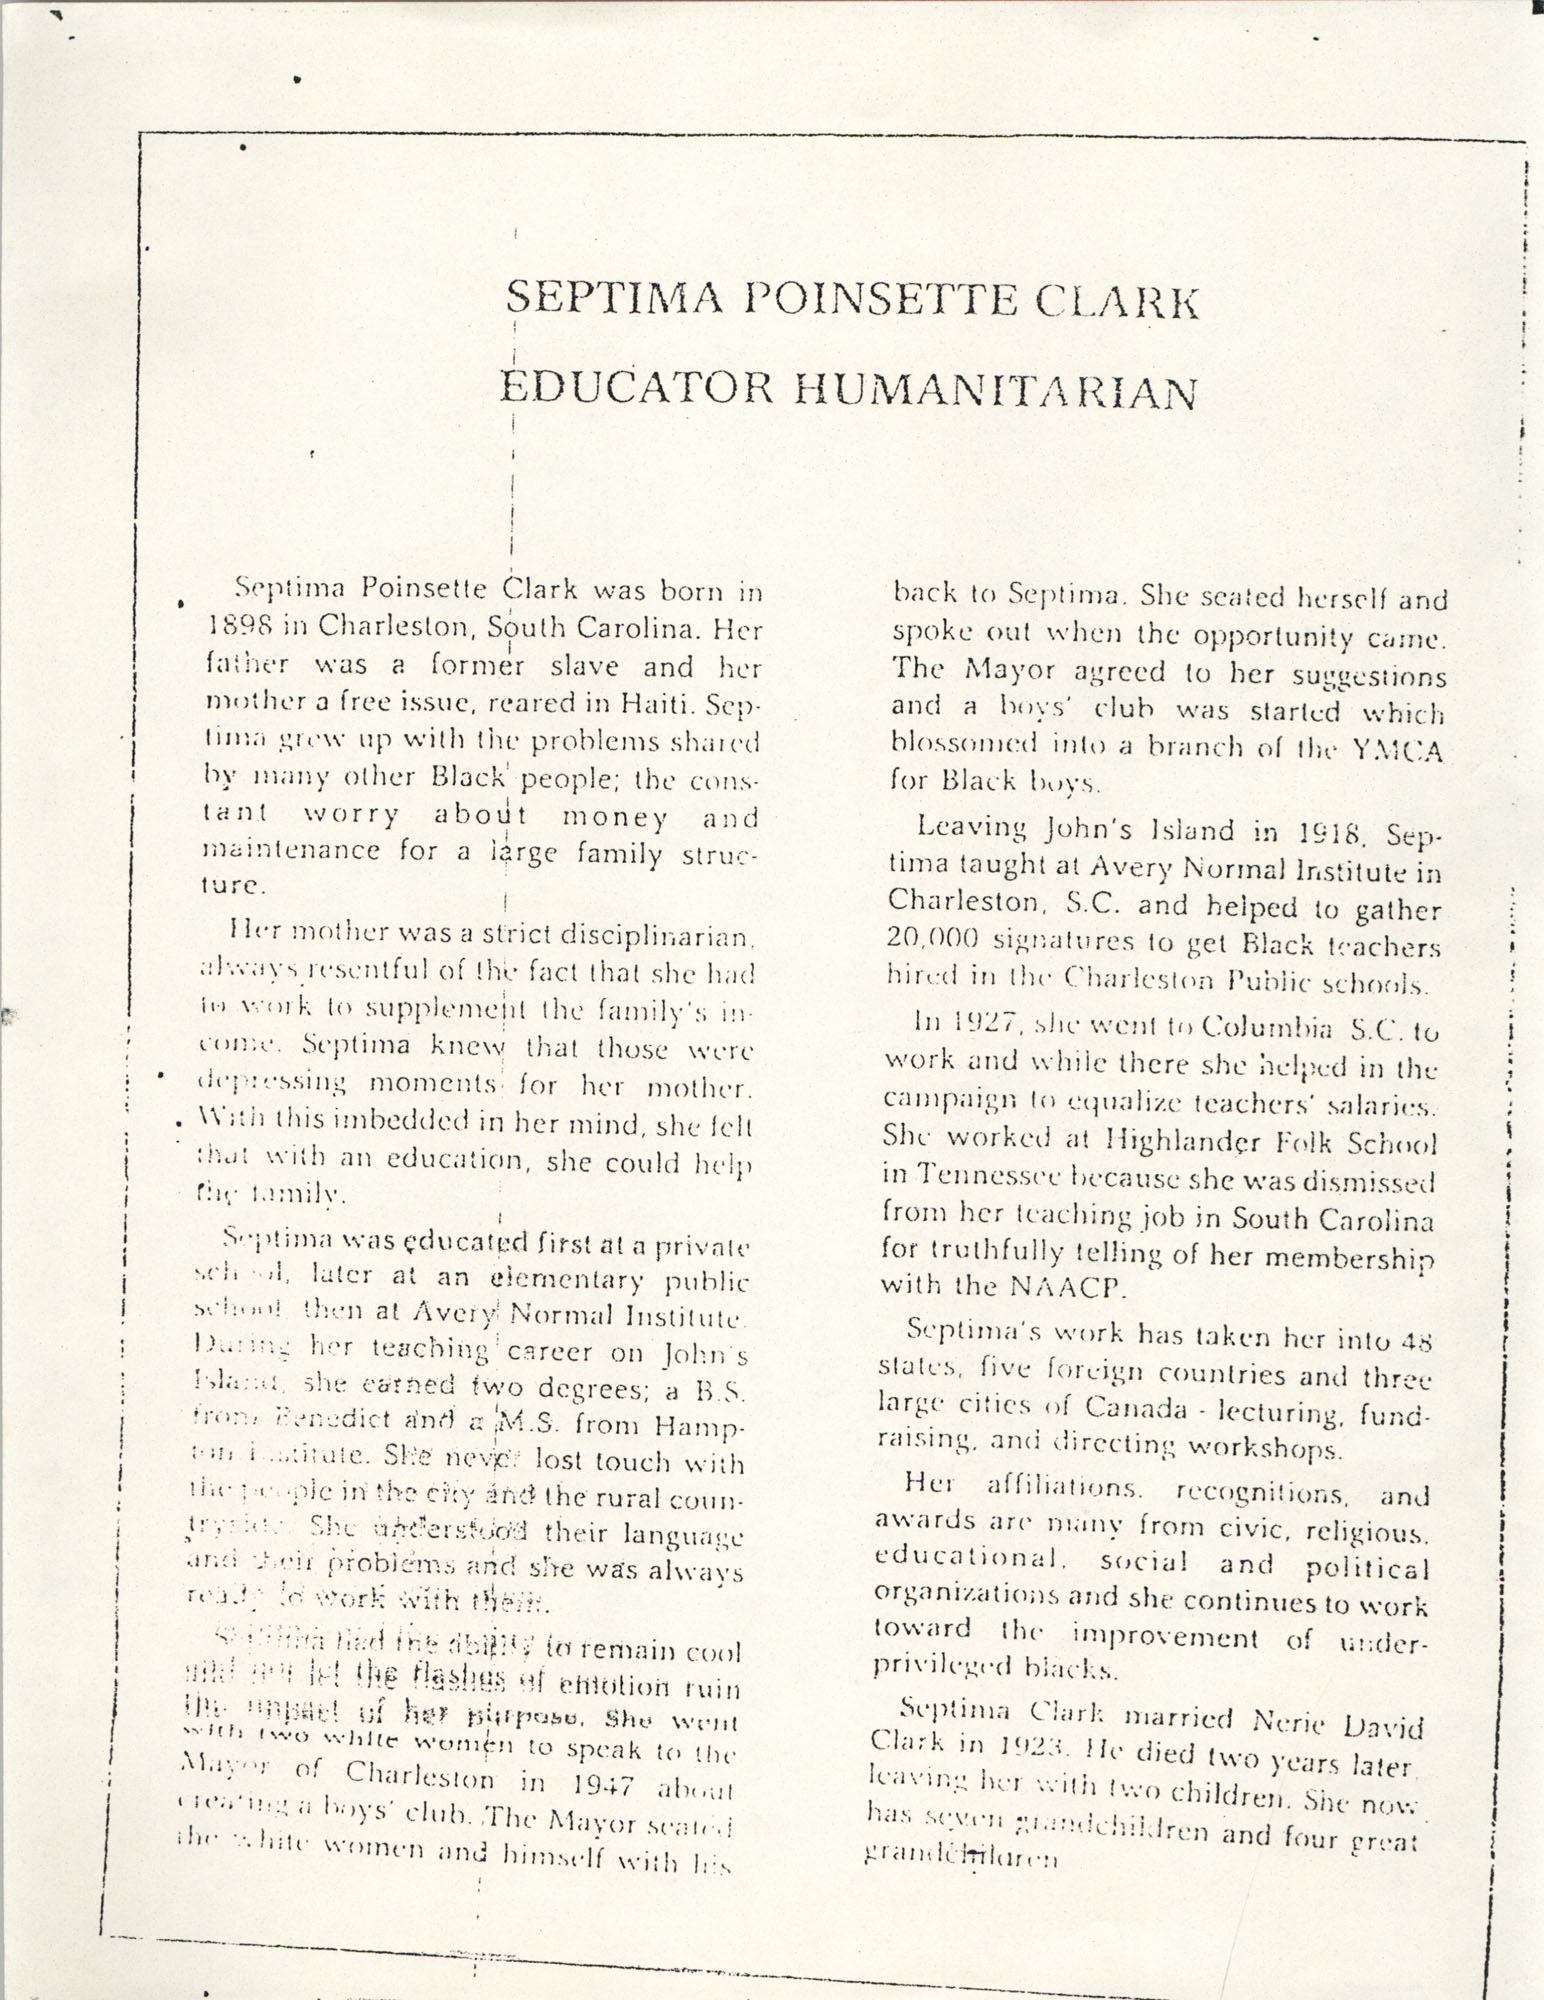 Septima Poinsette Clark: Educator, Humanitarian